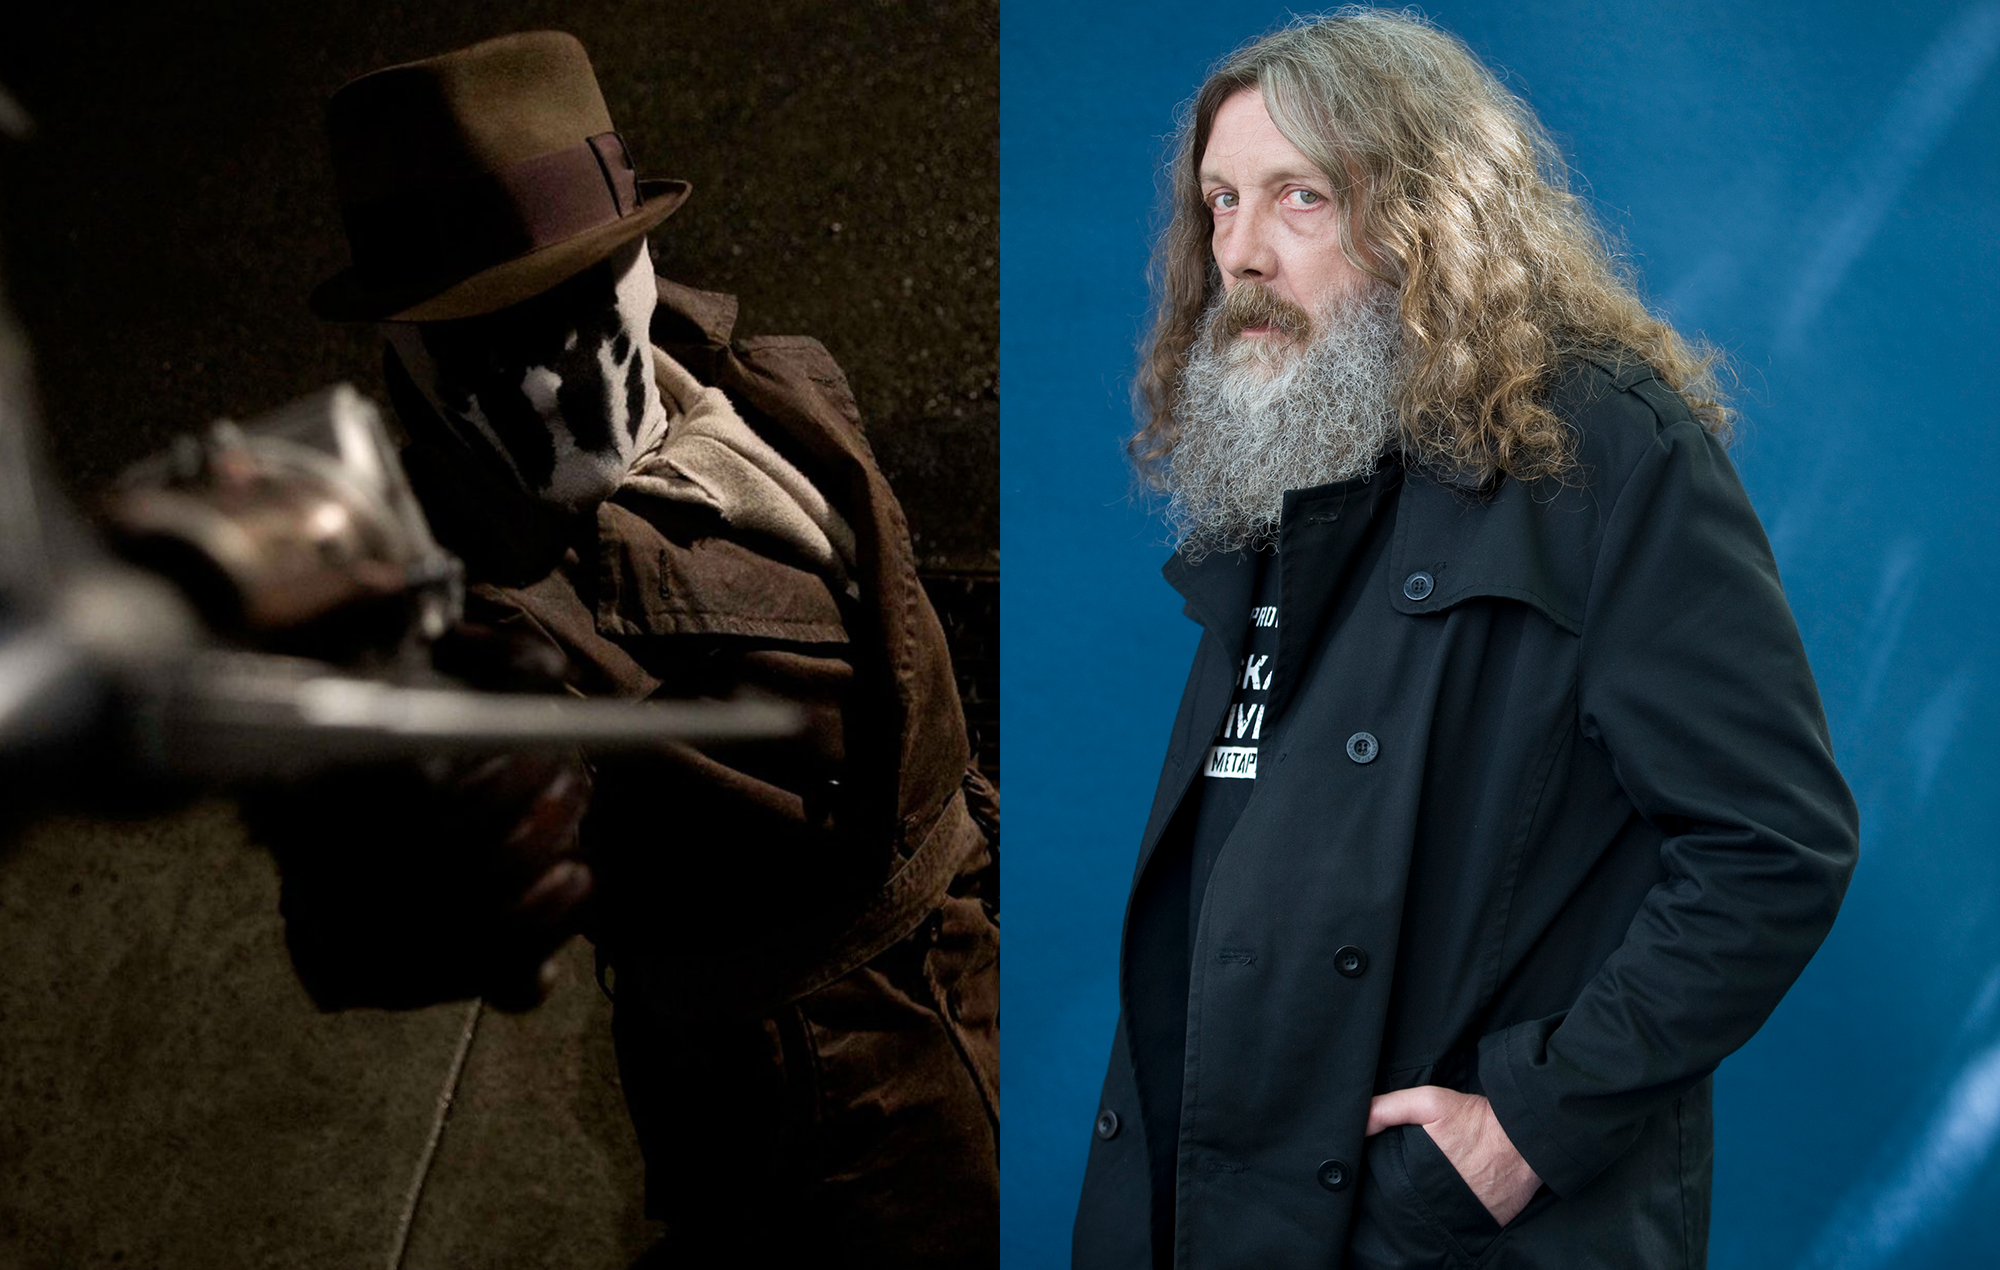 Alan Moore's legacy is taking over TV – but the missing element is the mage of the Midlands himself